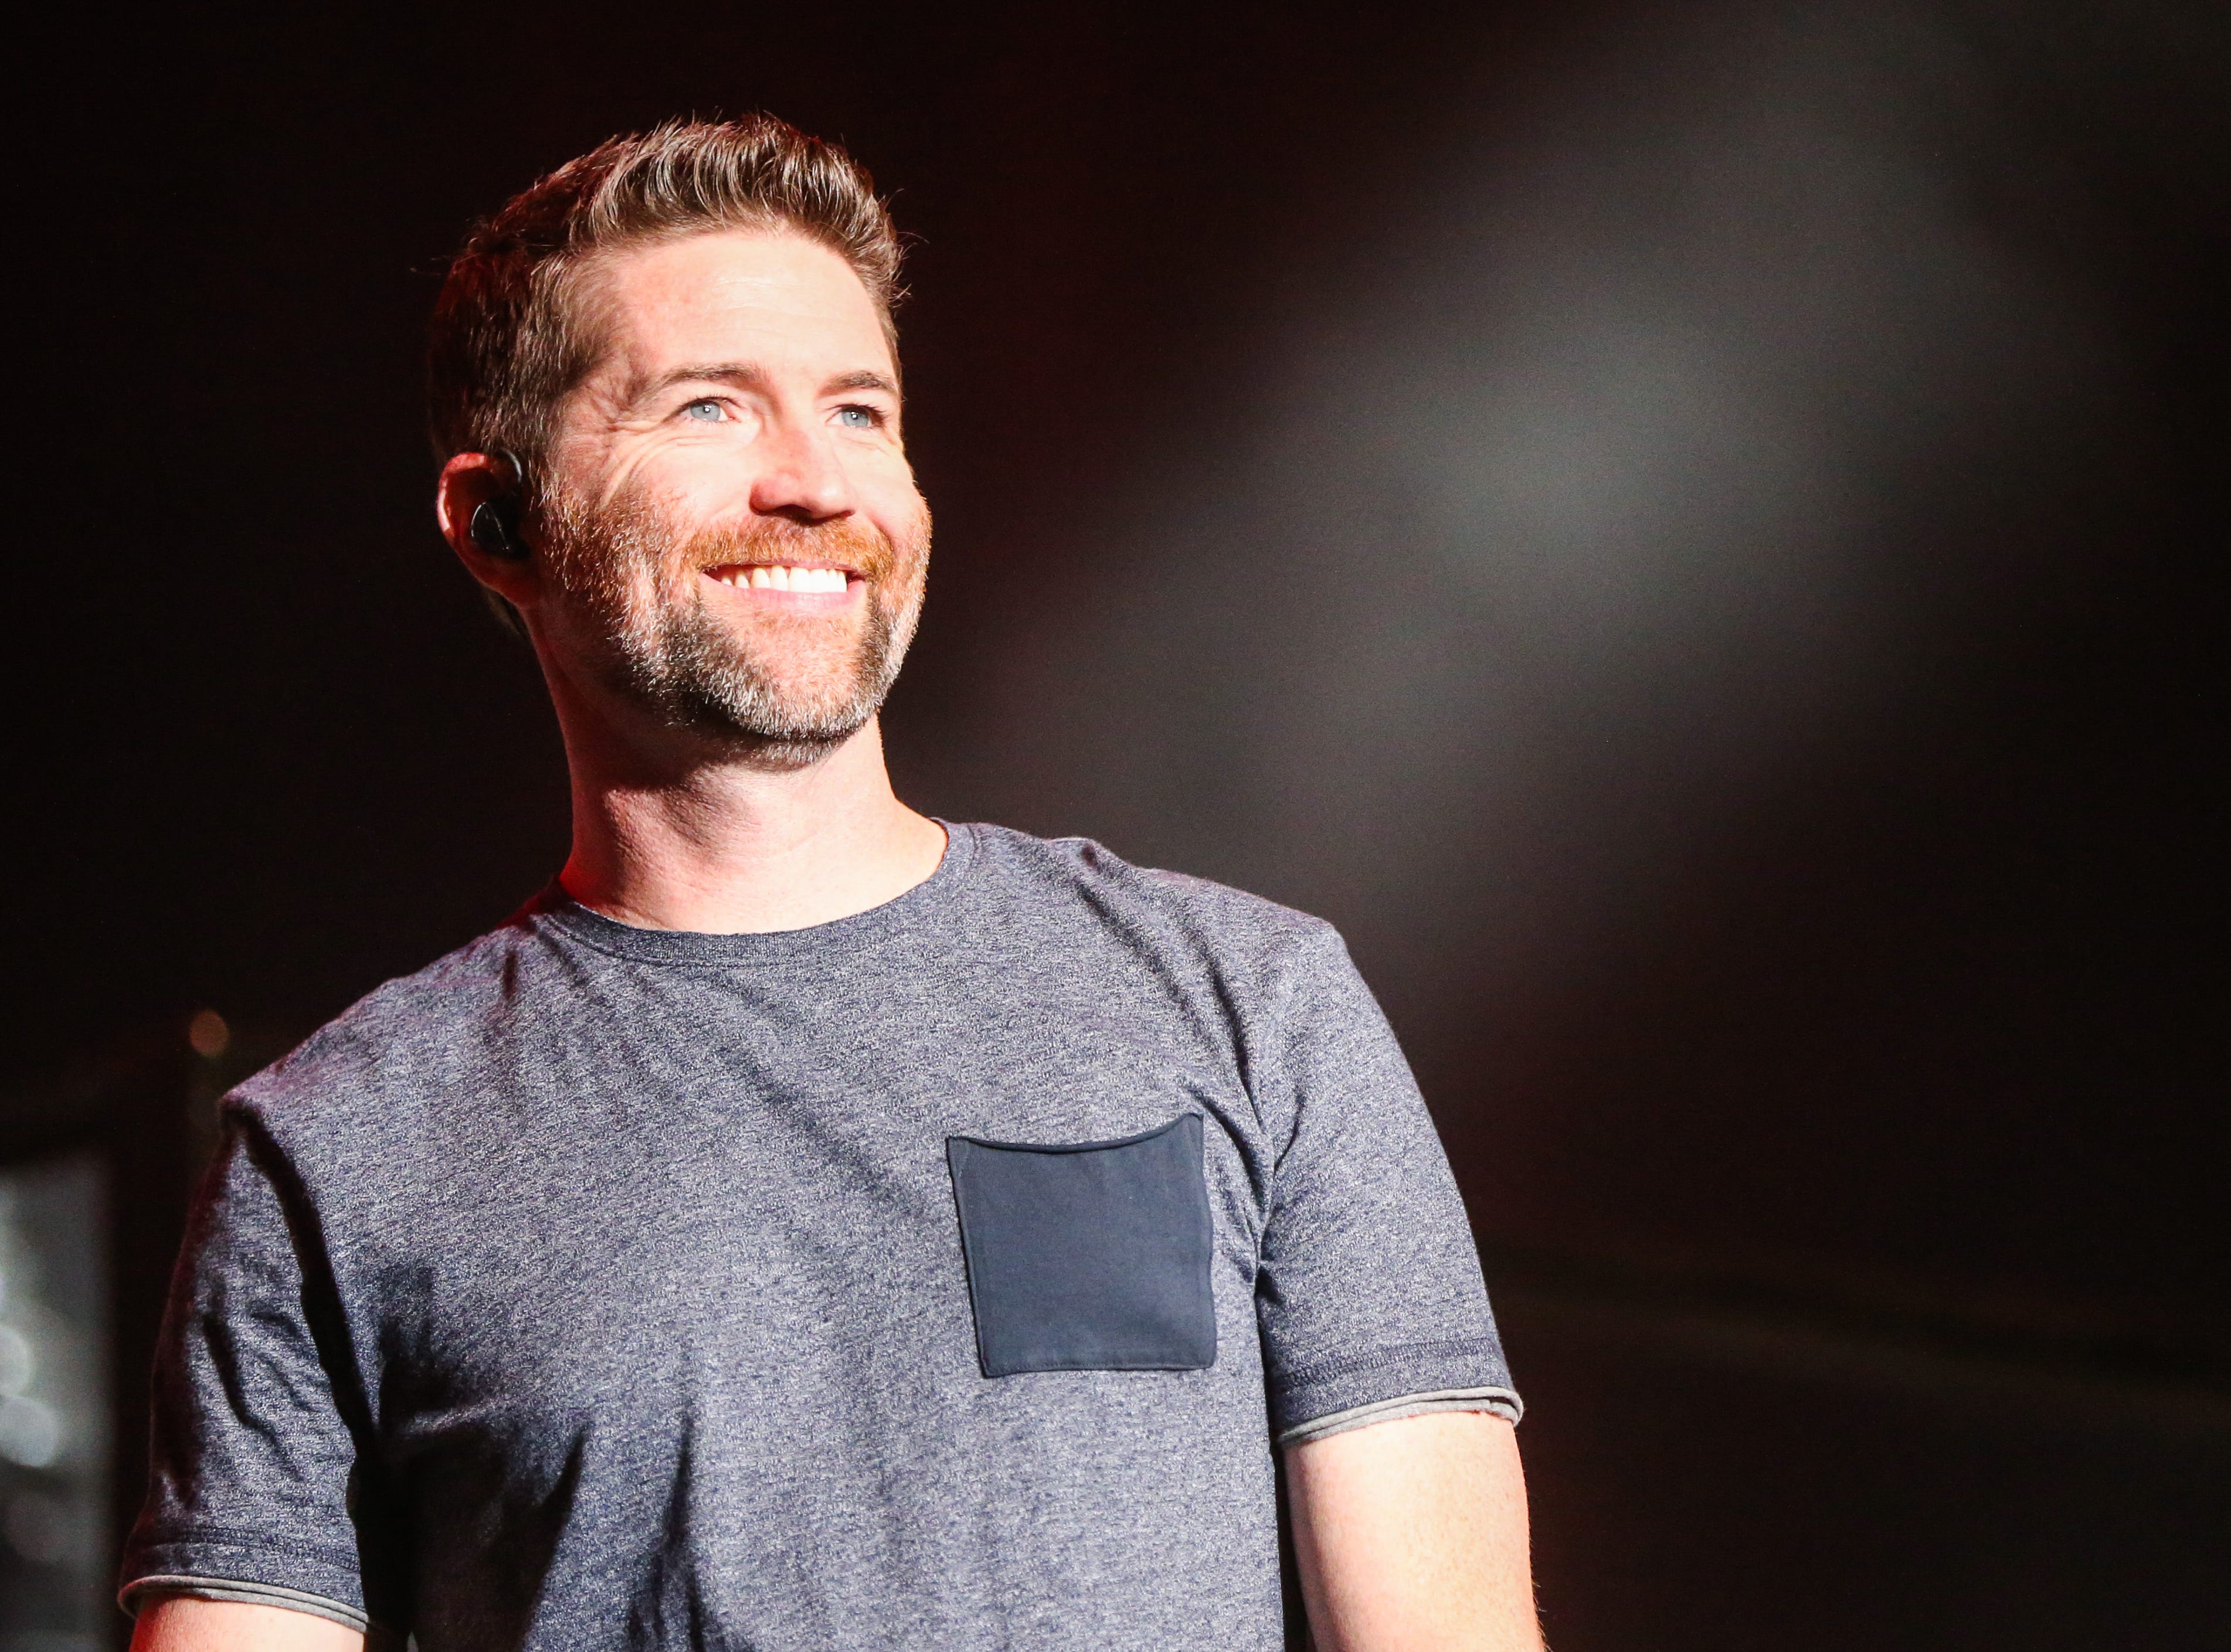 Josh Turner sings during the concert Friday, April 5, 2019, at Murphey Performance Hall.